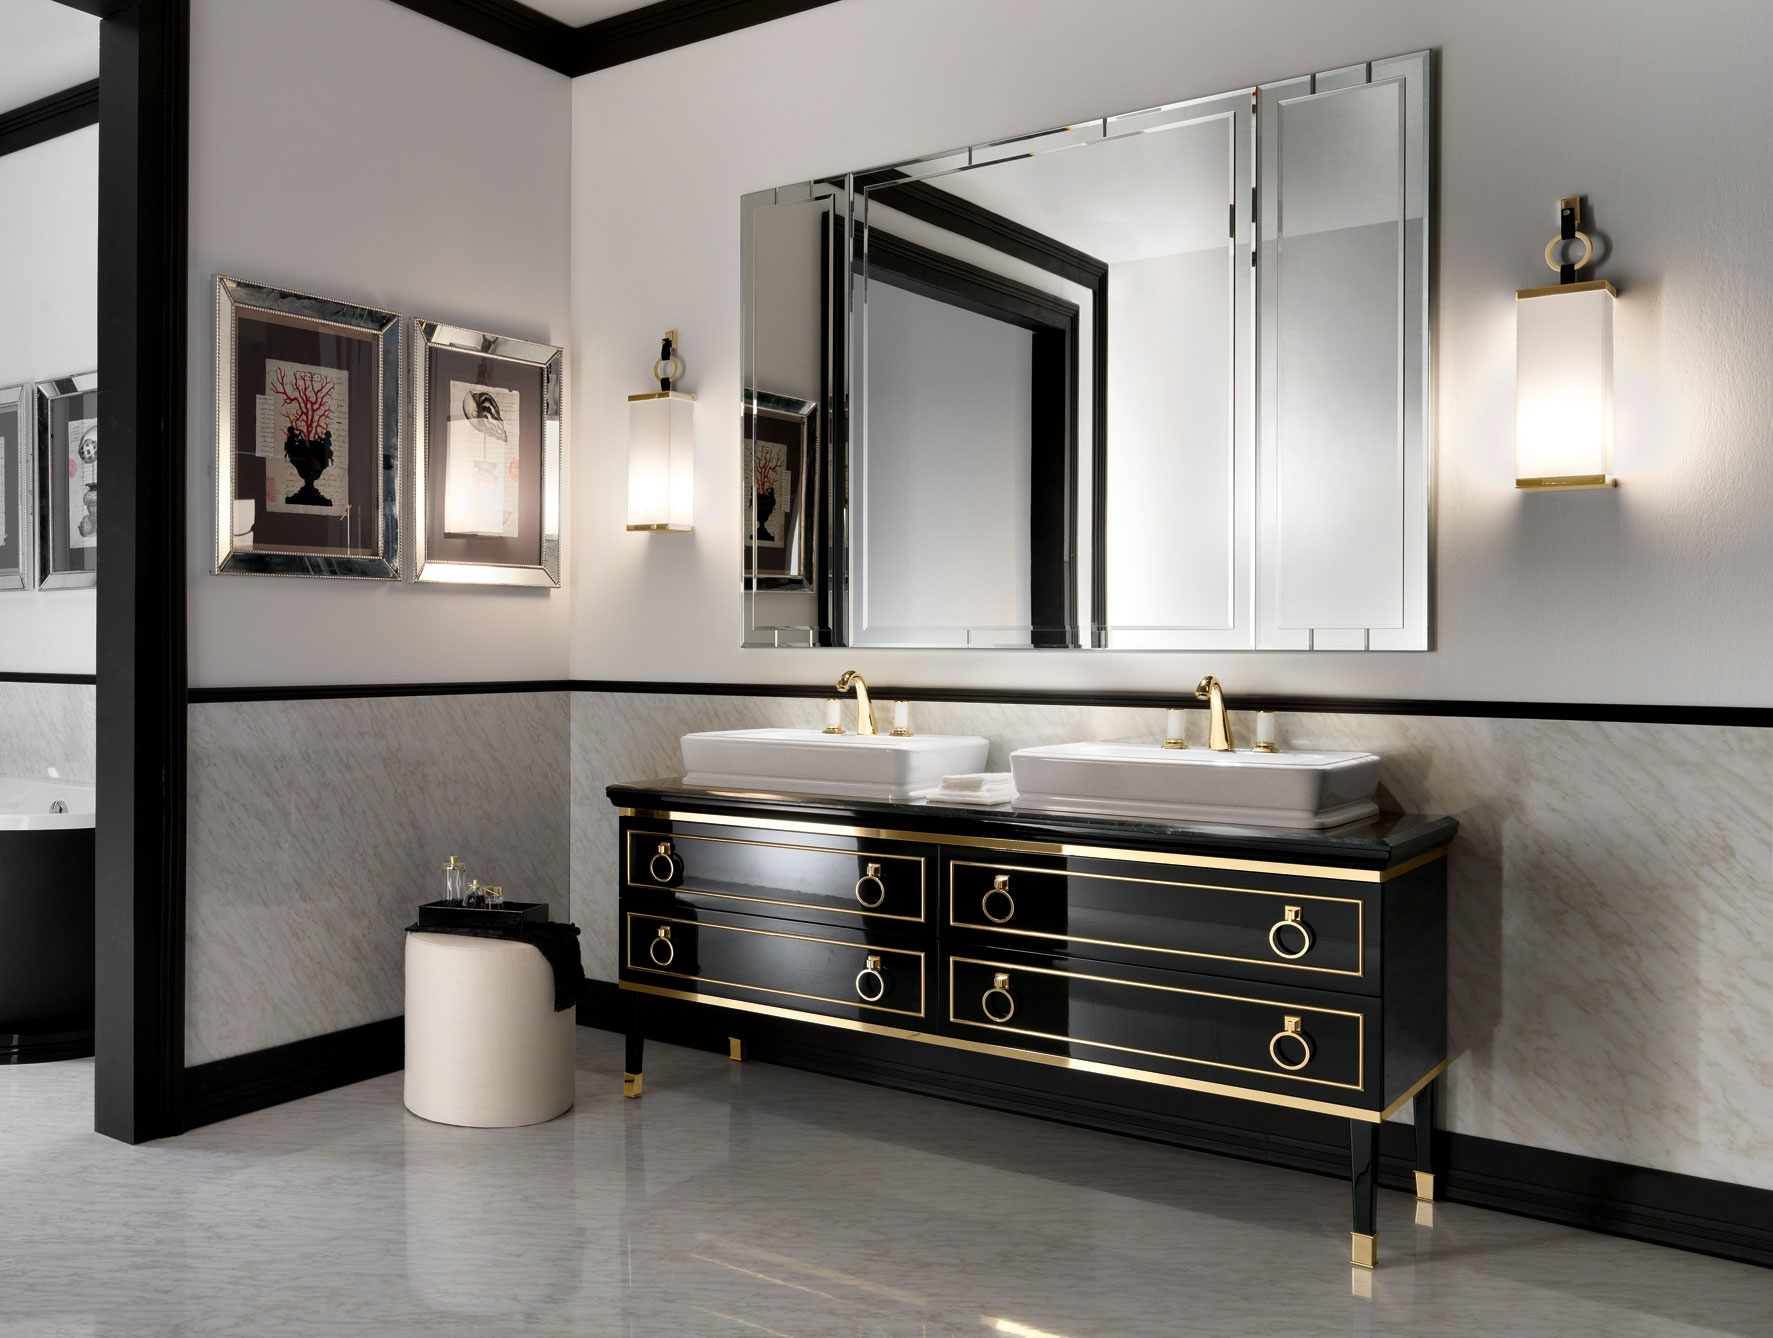 Luxury Vanity Units For Bathroom1773 X 1338